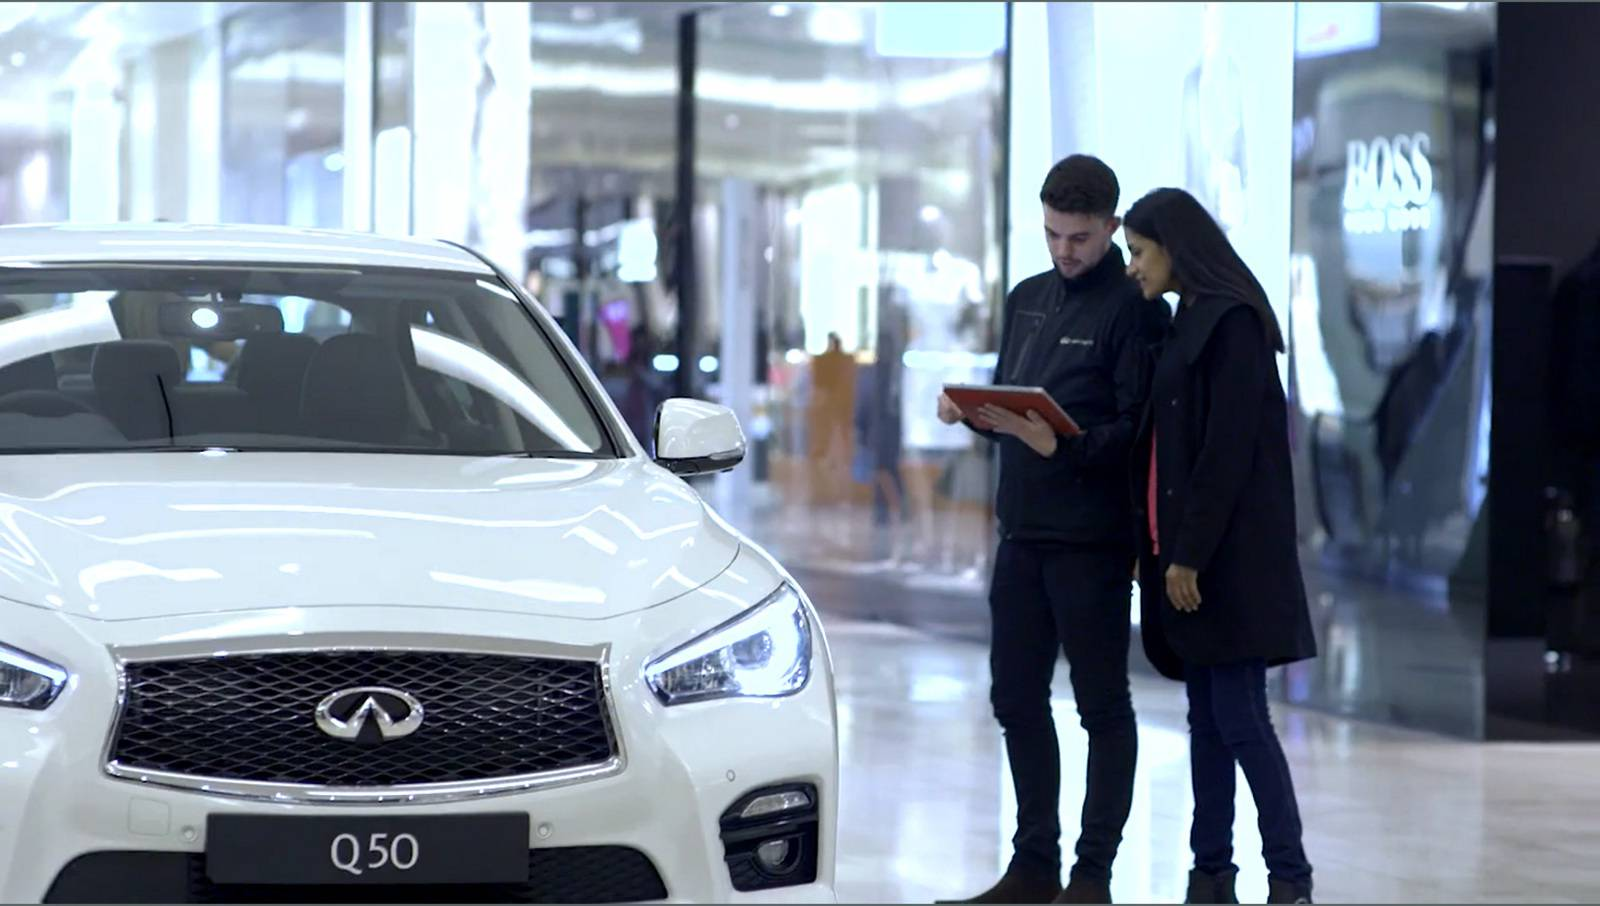 Selling Luxury Cars In A Mall Microsoft Industry Blogs